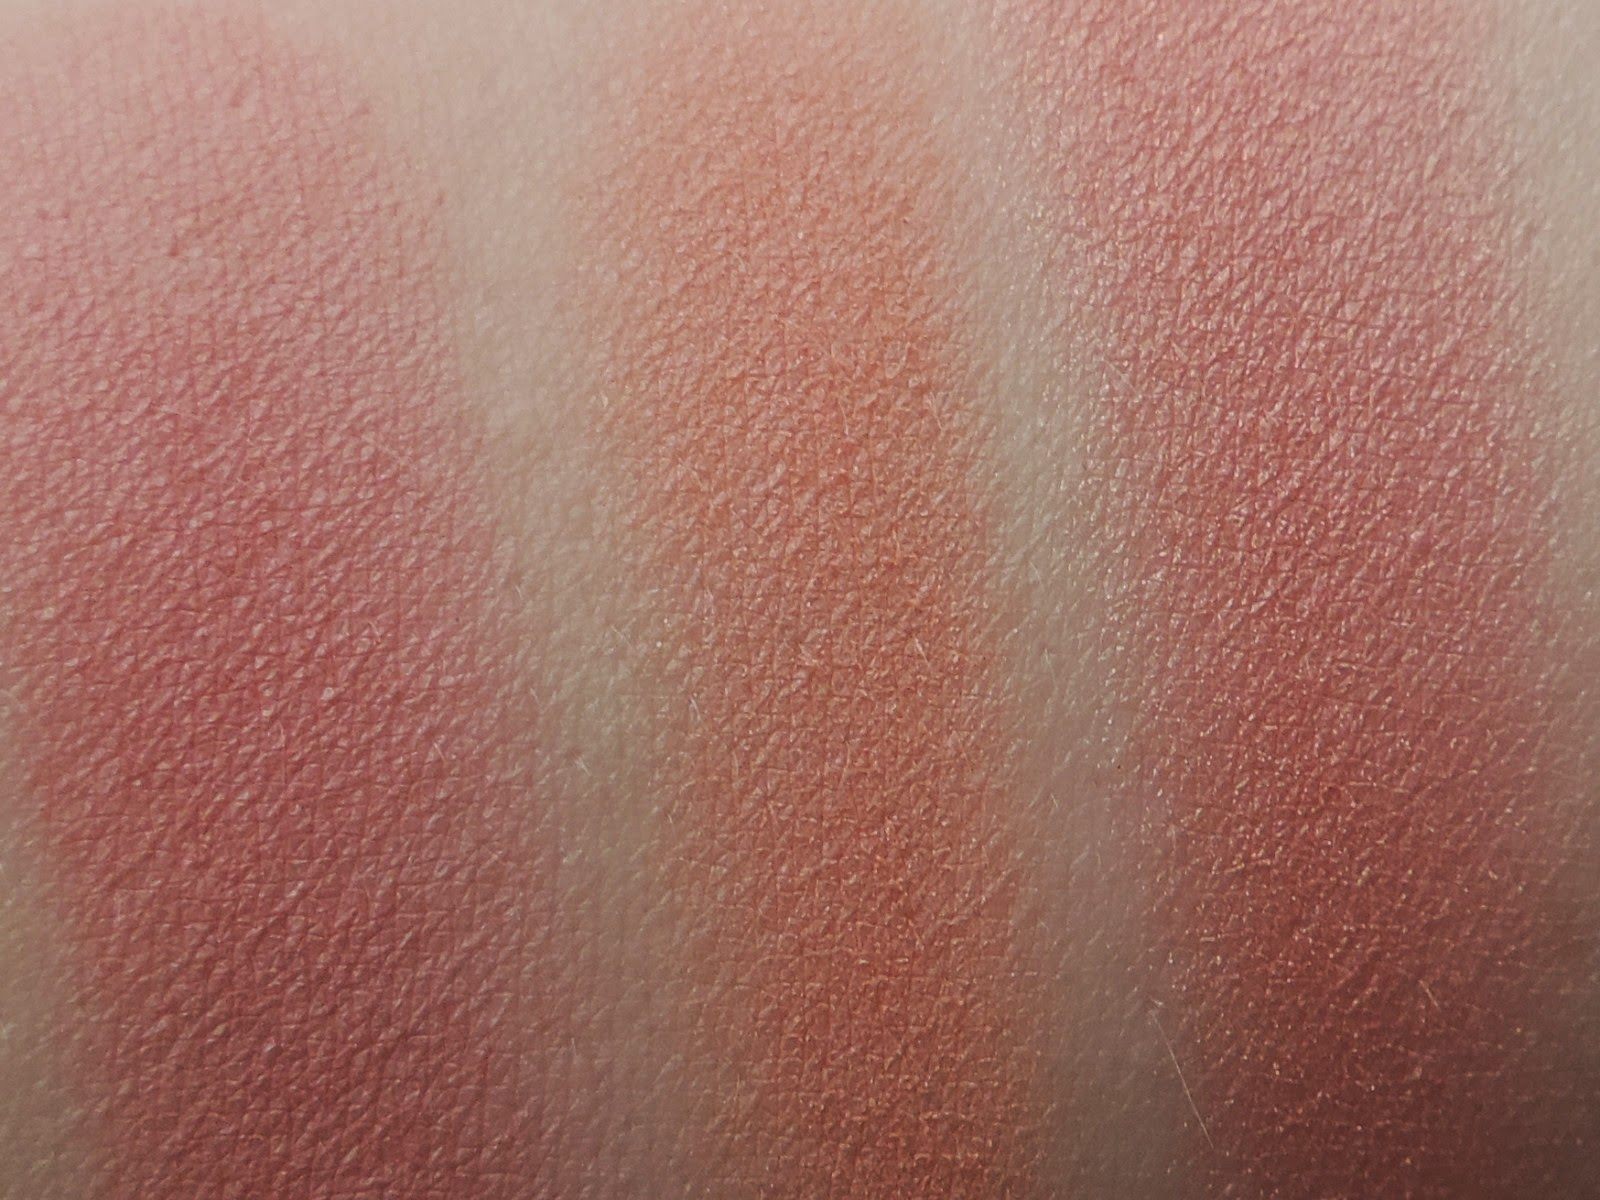 Swatches of Makeup Geek blush (from left) Spell Bound, Bliss, Romance